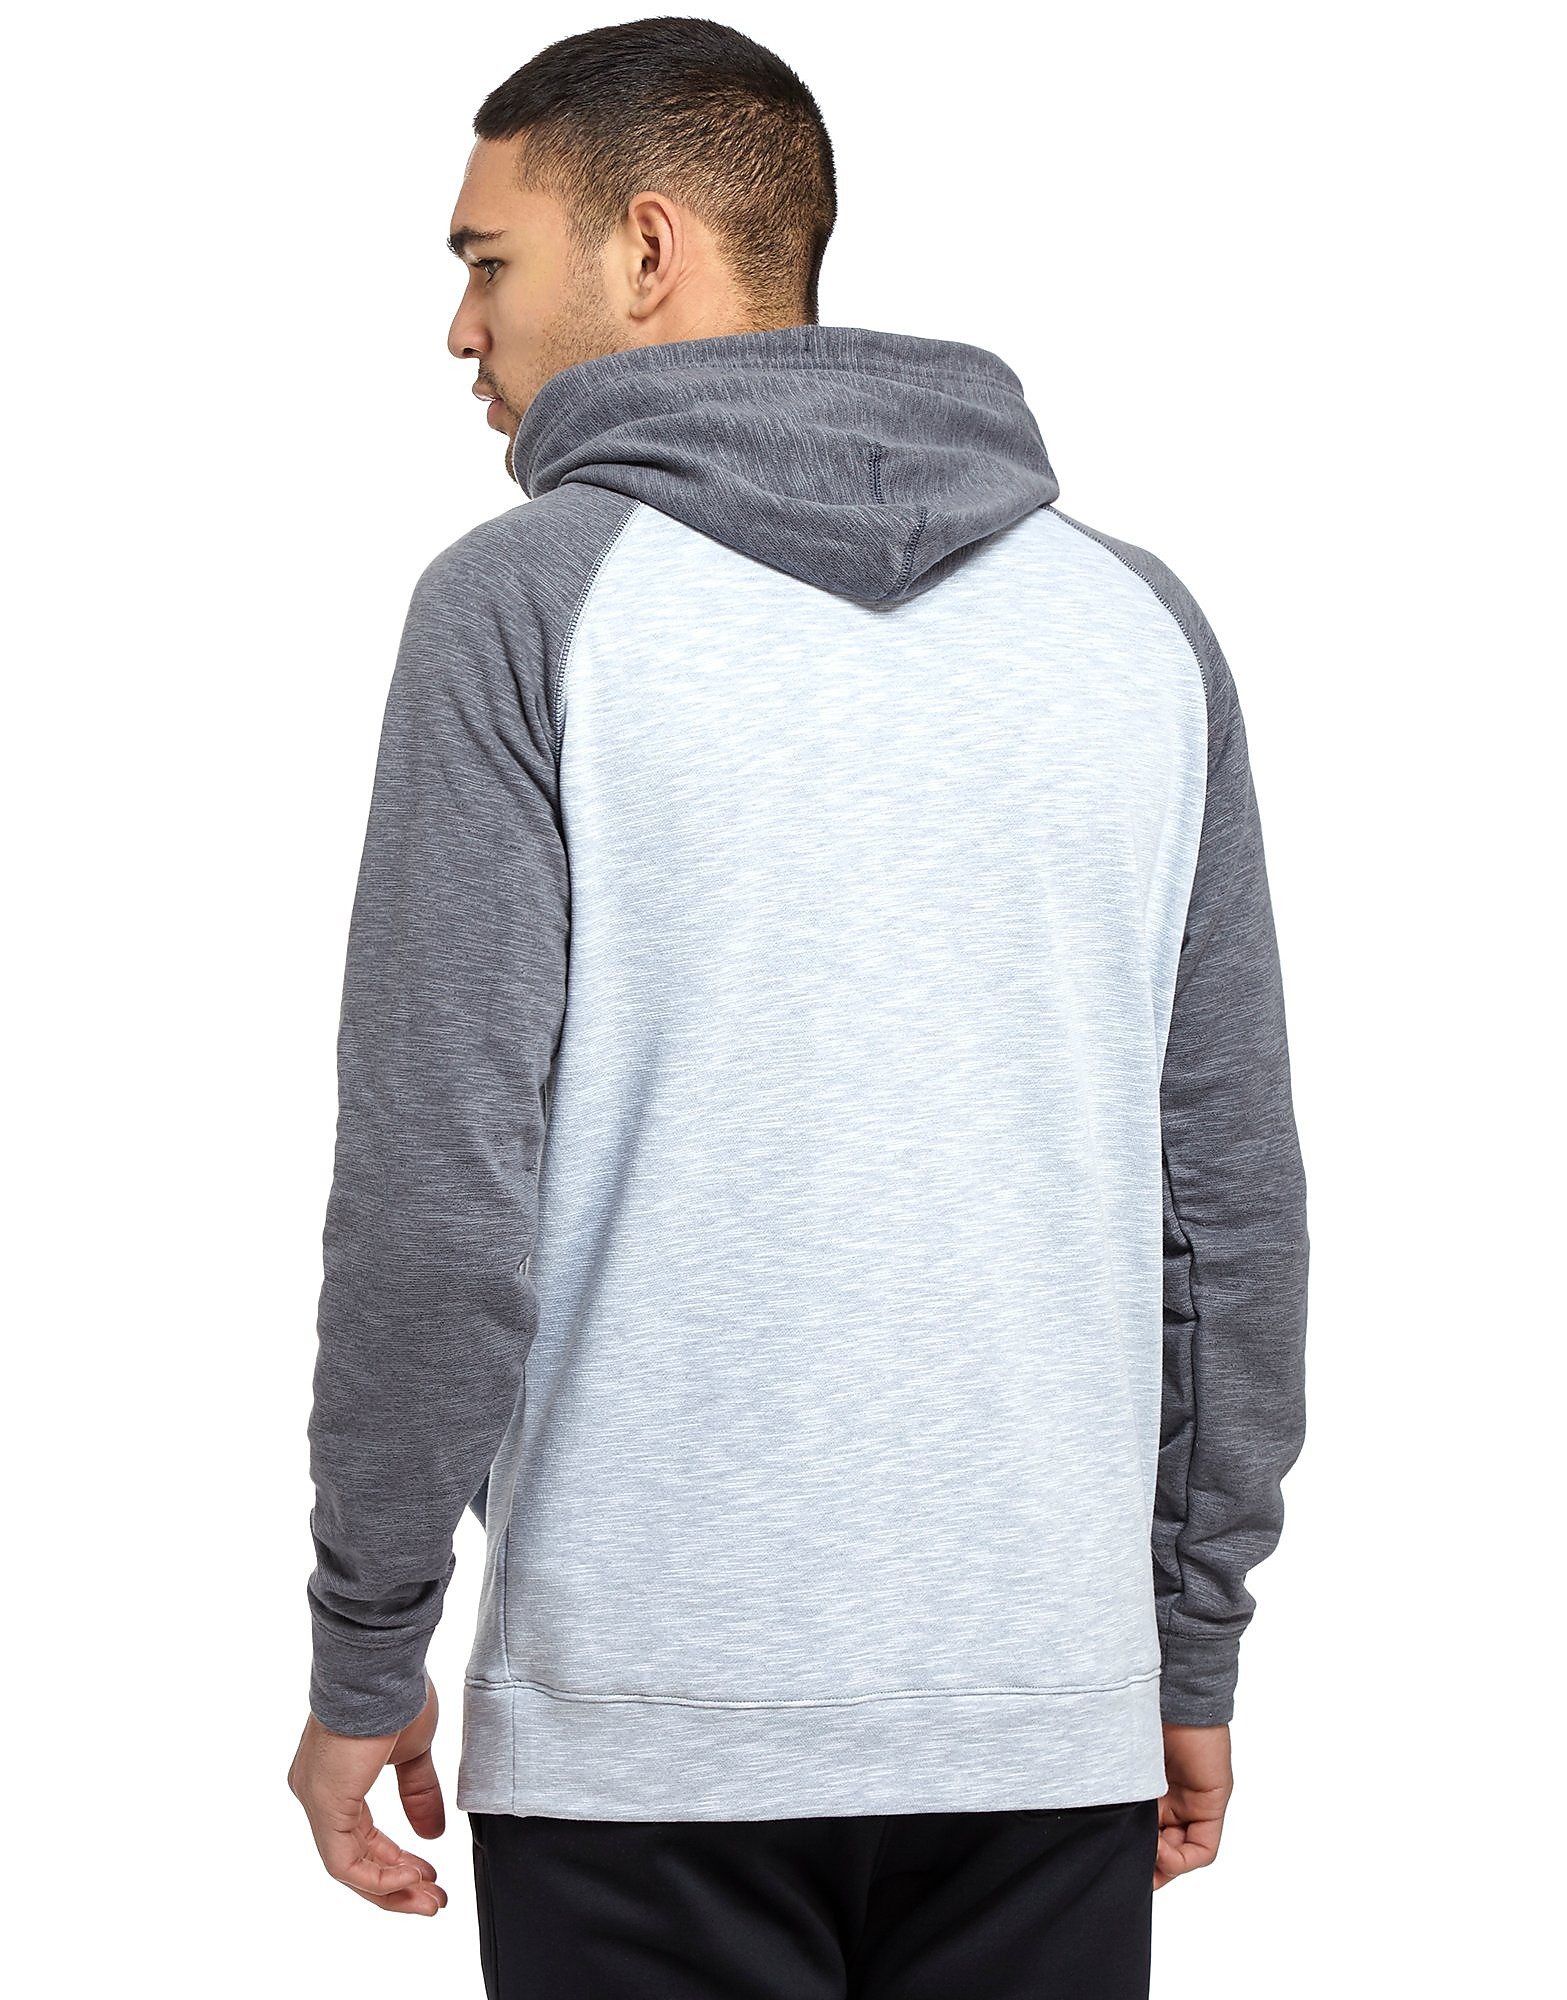 Under Armour Raglan Overhead Hoody